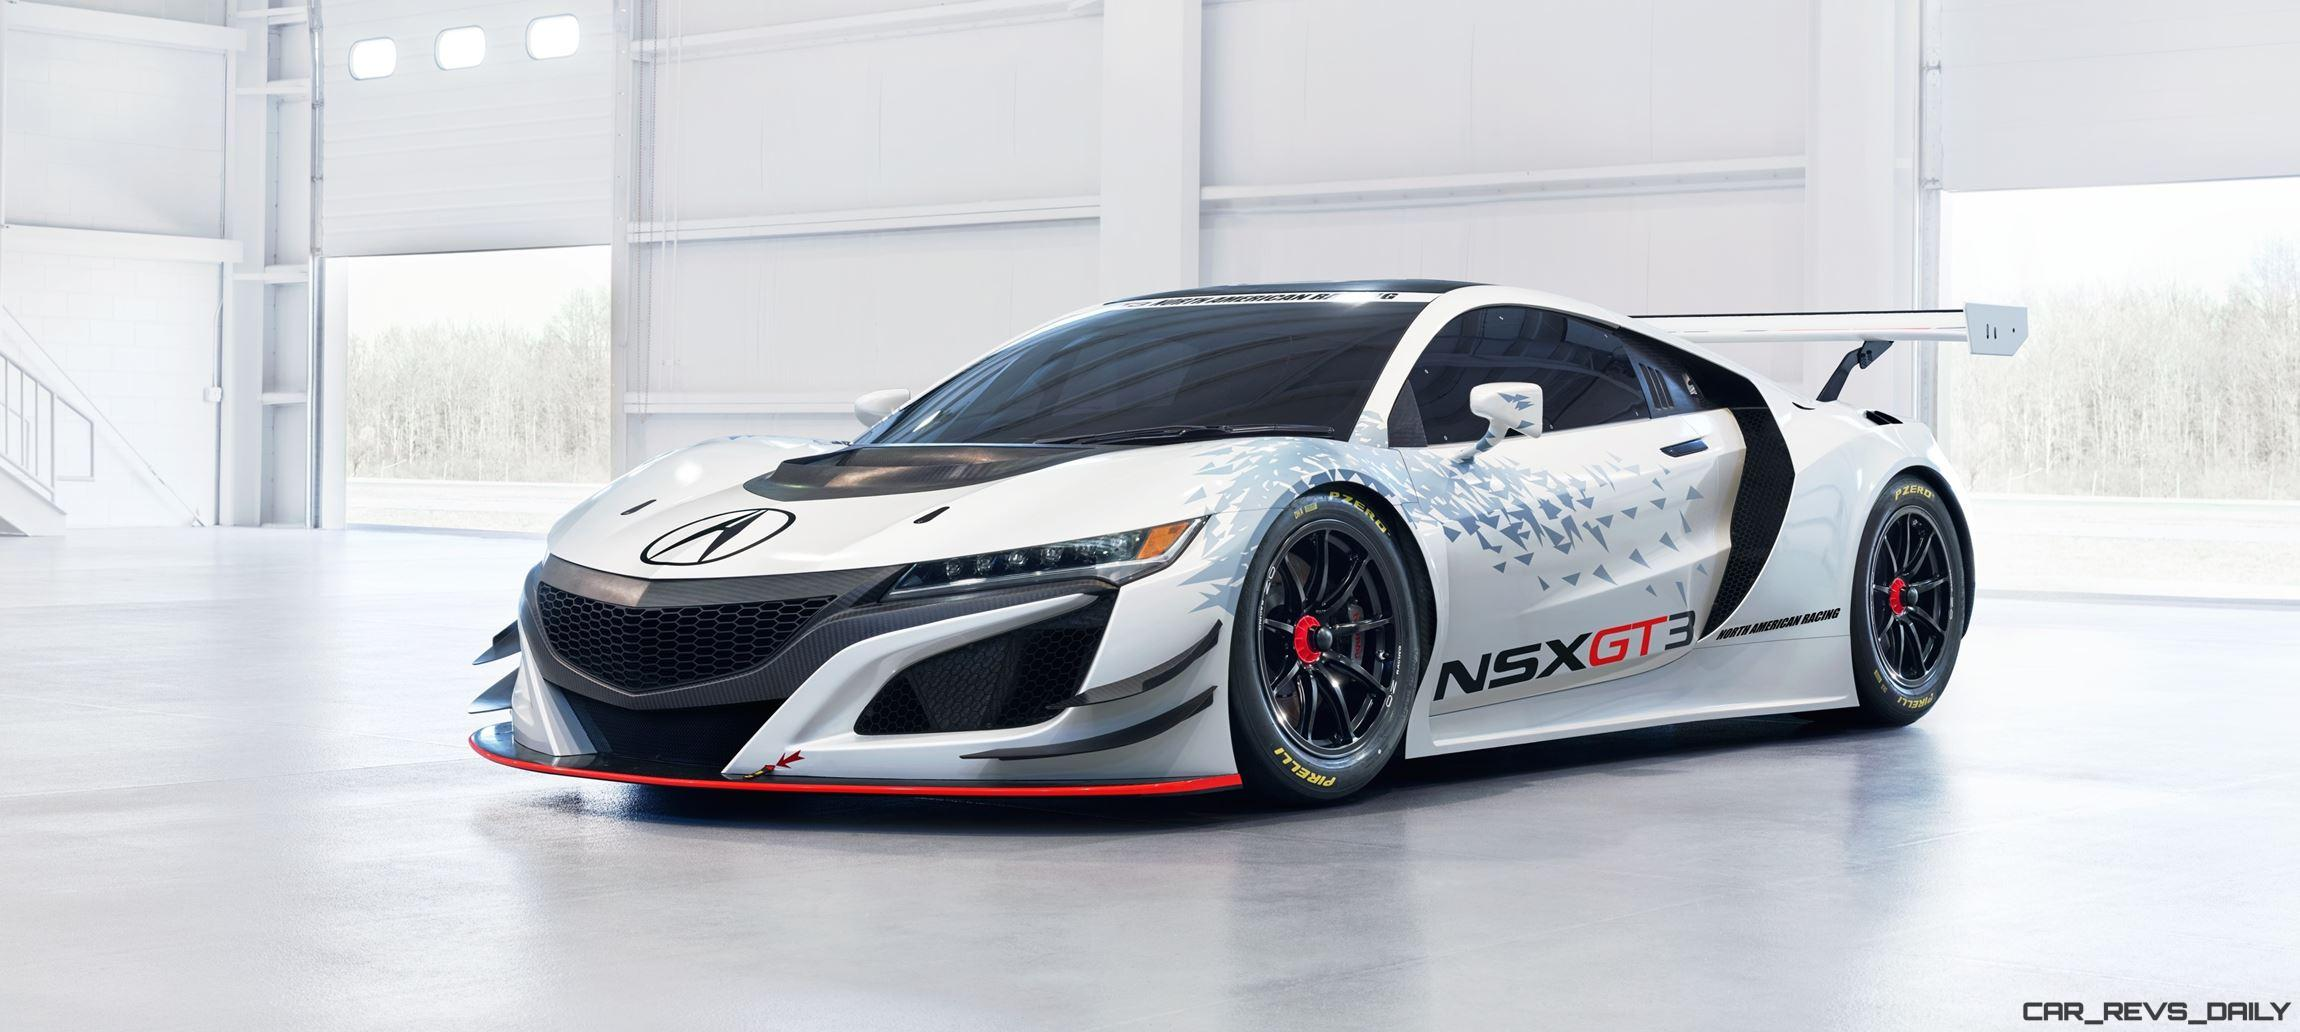 Acura Nsx Gt3 Race Car 1 2014 Honda Crv Wiring Diagram